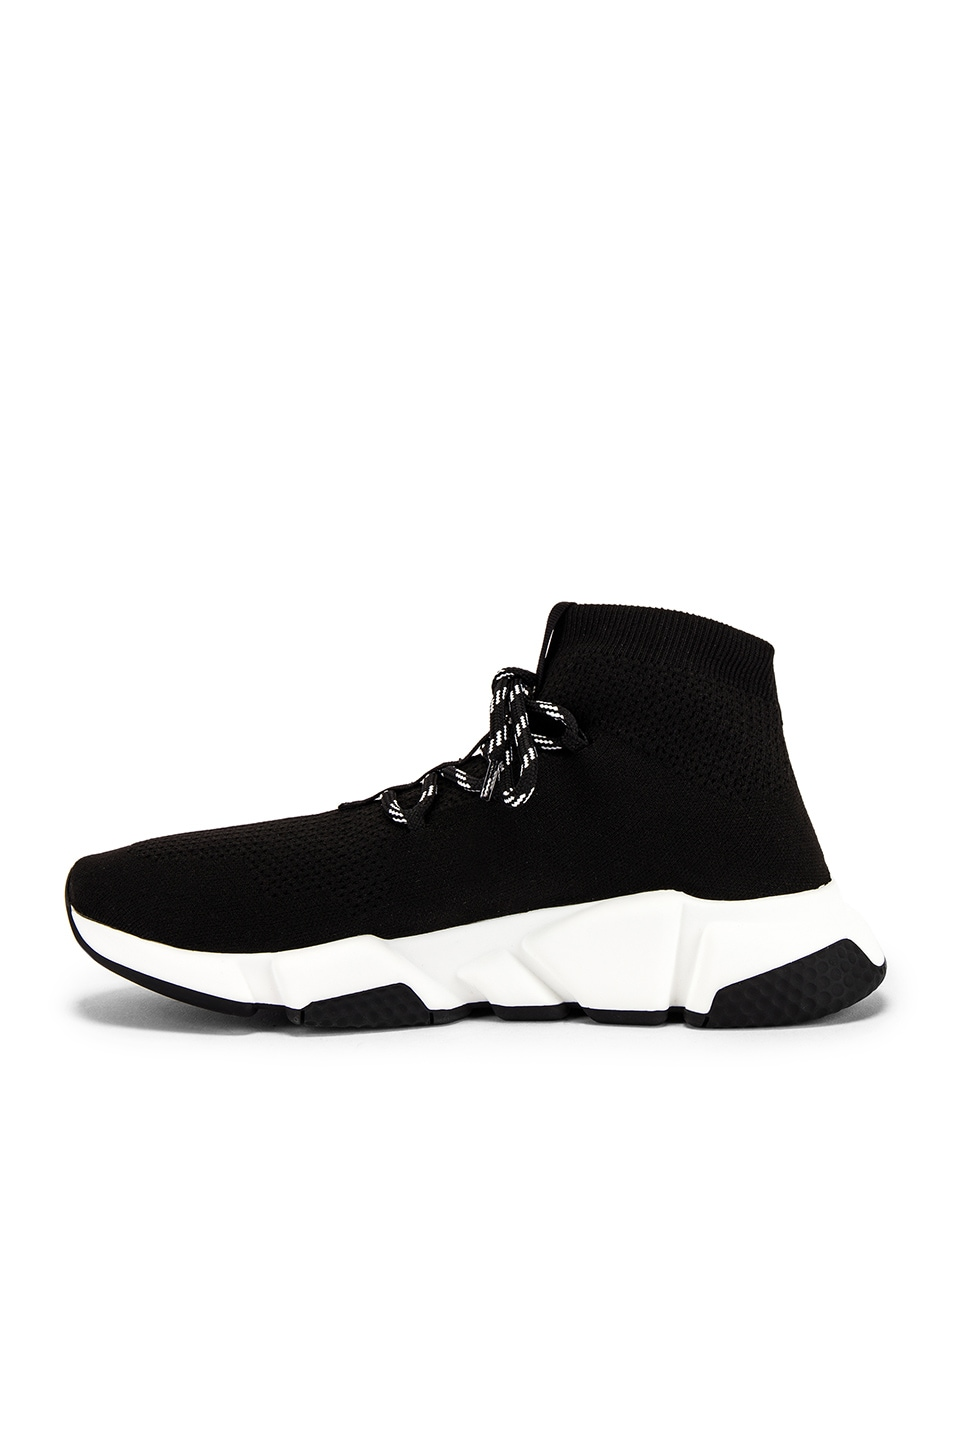 Image 5 of Balenciaga Speed Light Lace-Up Sneaker in Black